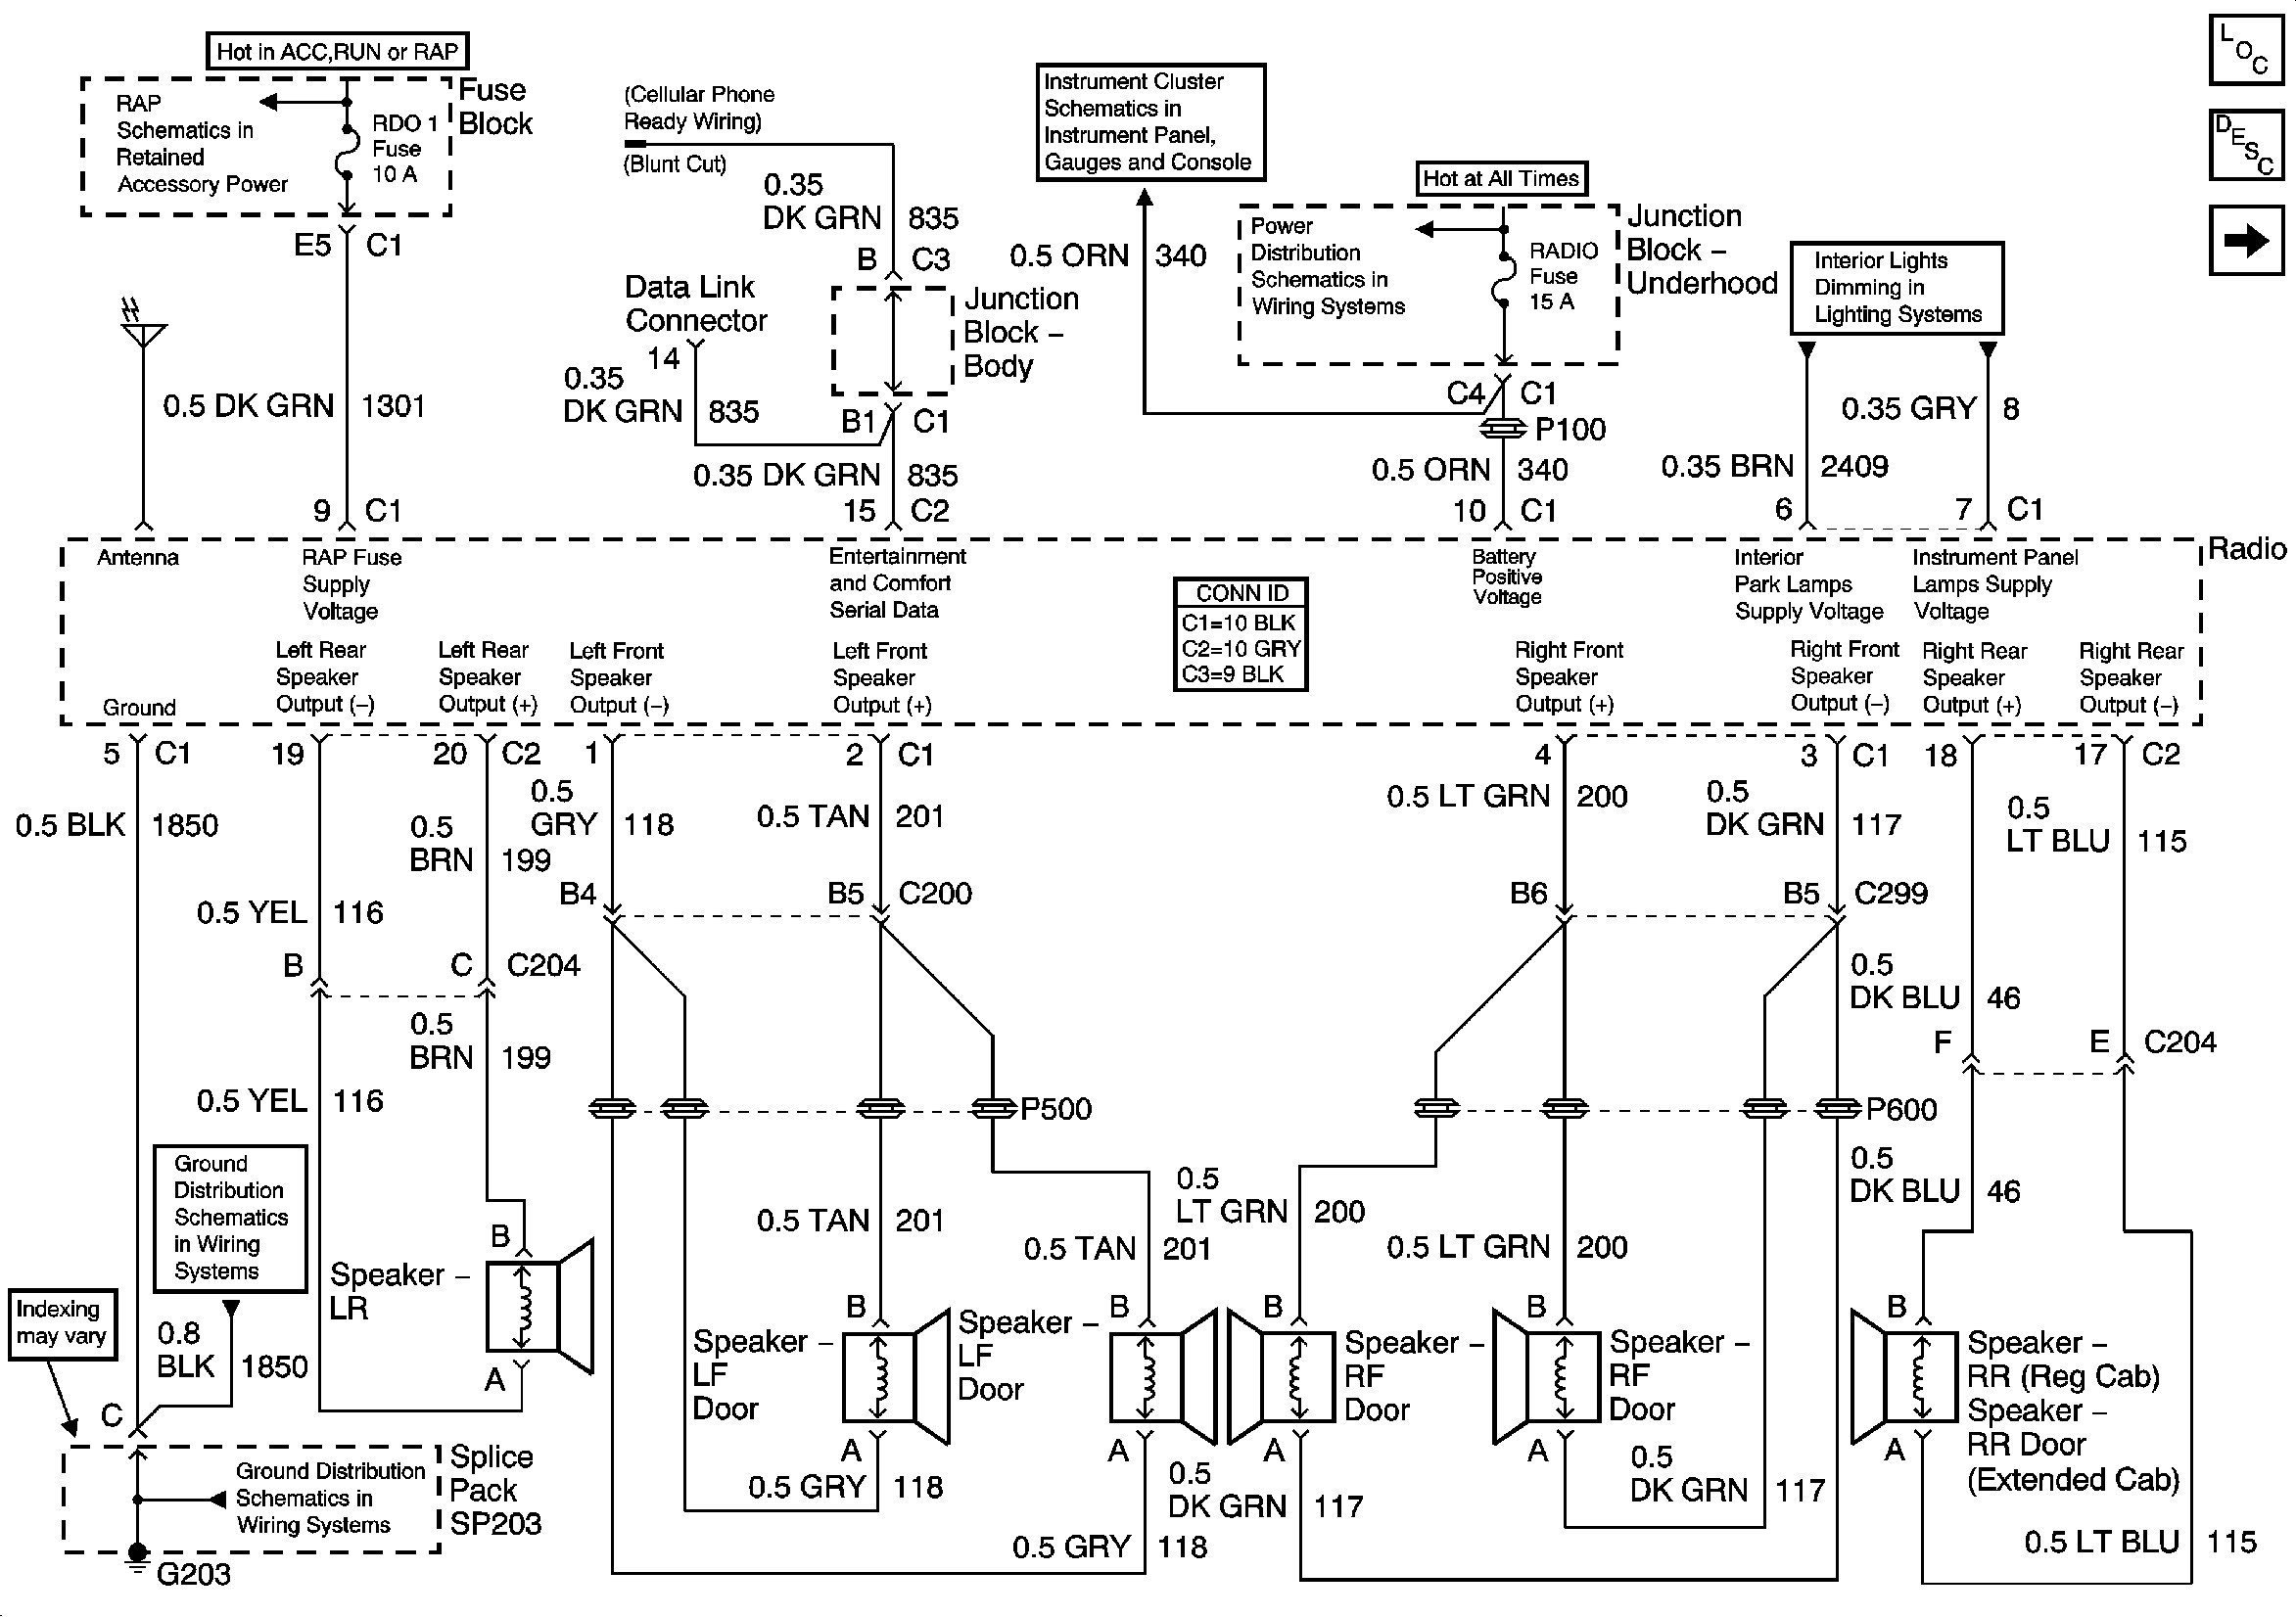 C2A58 Wiring Diagram 2003 Infiniti I 35 | Wiring ResourcesWiring Resources